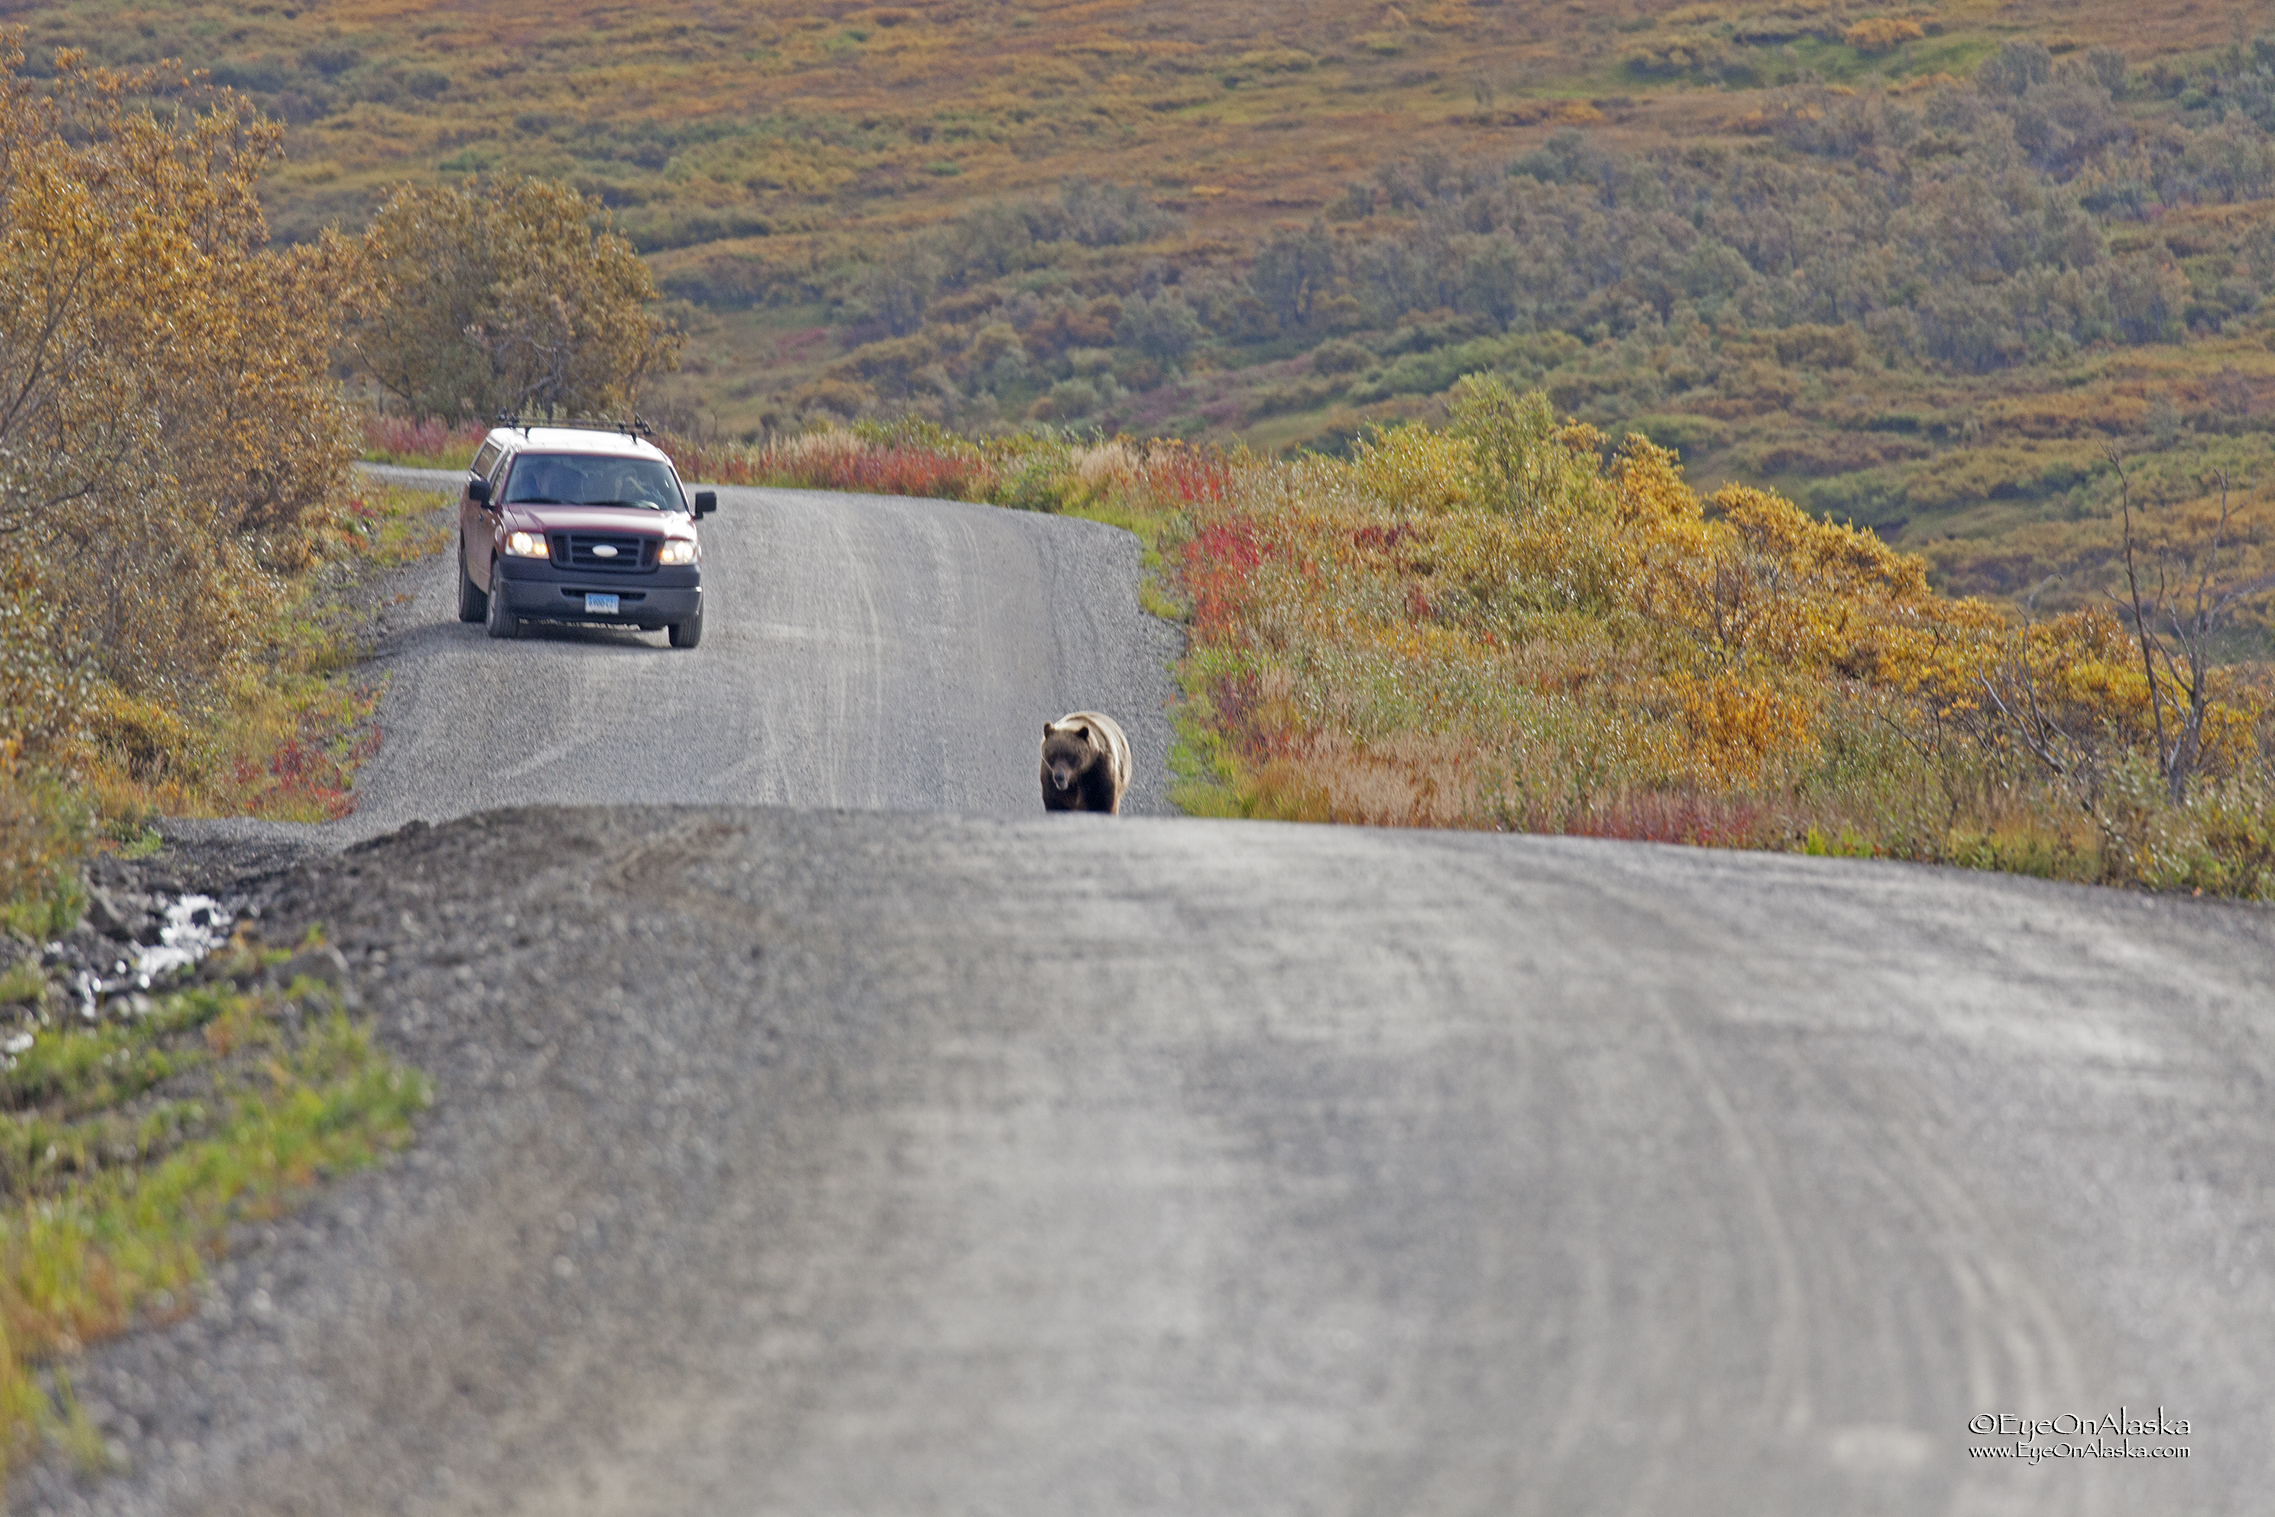 Mr. Curious bear has now decided that he really wants to see just what we are, so he's on the road hoofing it towards us at a good clip.  That's a photographer's car in the background that came upon all this happening.  We made it around a corner so the bear could no longer see us and we jumped on the bikes and sprinted as fast as we could to put some distance between us, always looking behind to see what he was up to.  He must have got bored when he couldn't see us any longer and he got off the road.   A good healthy dose of adrenalin for breakfast!